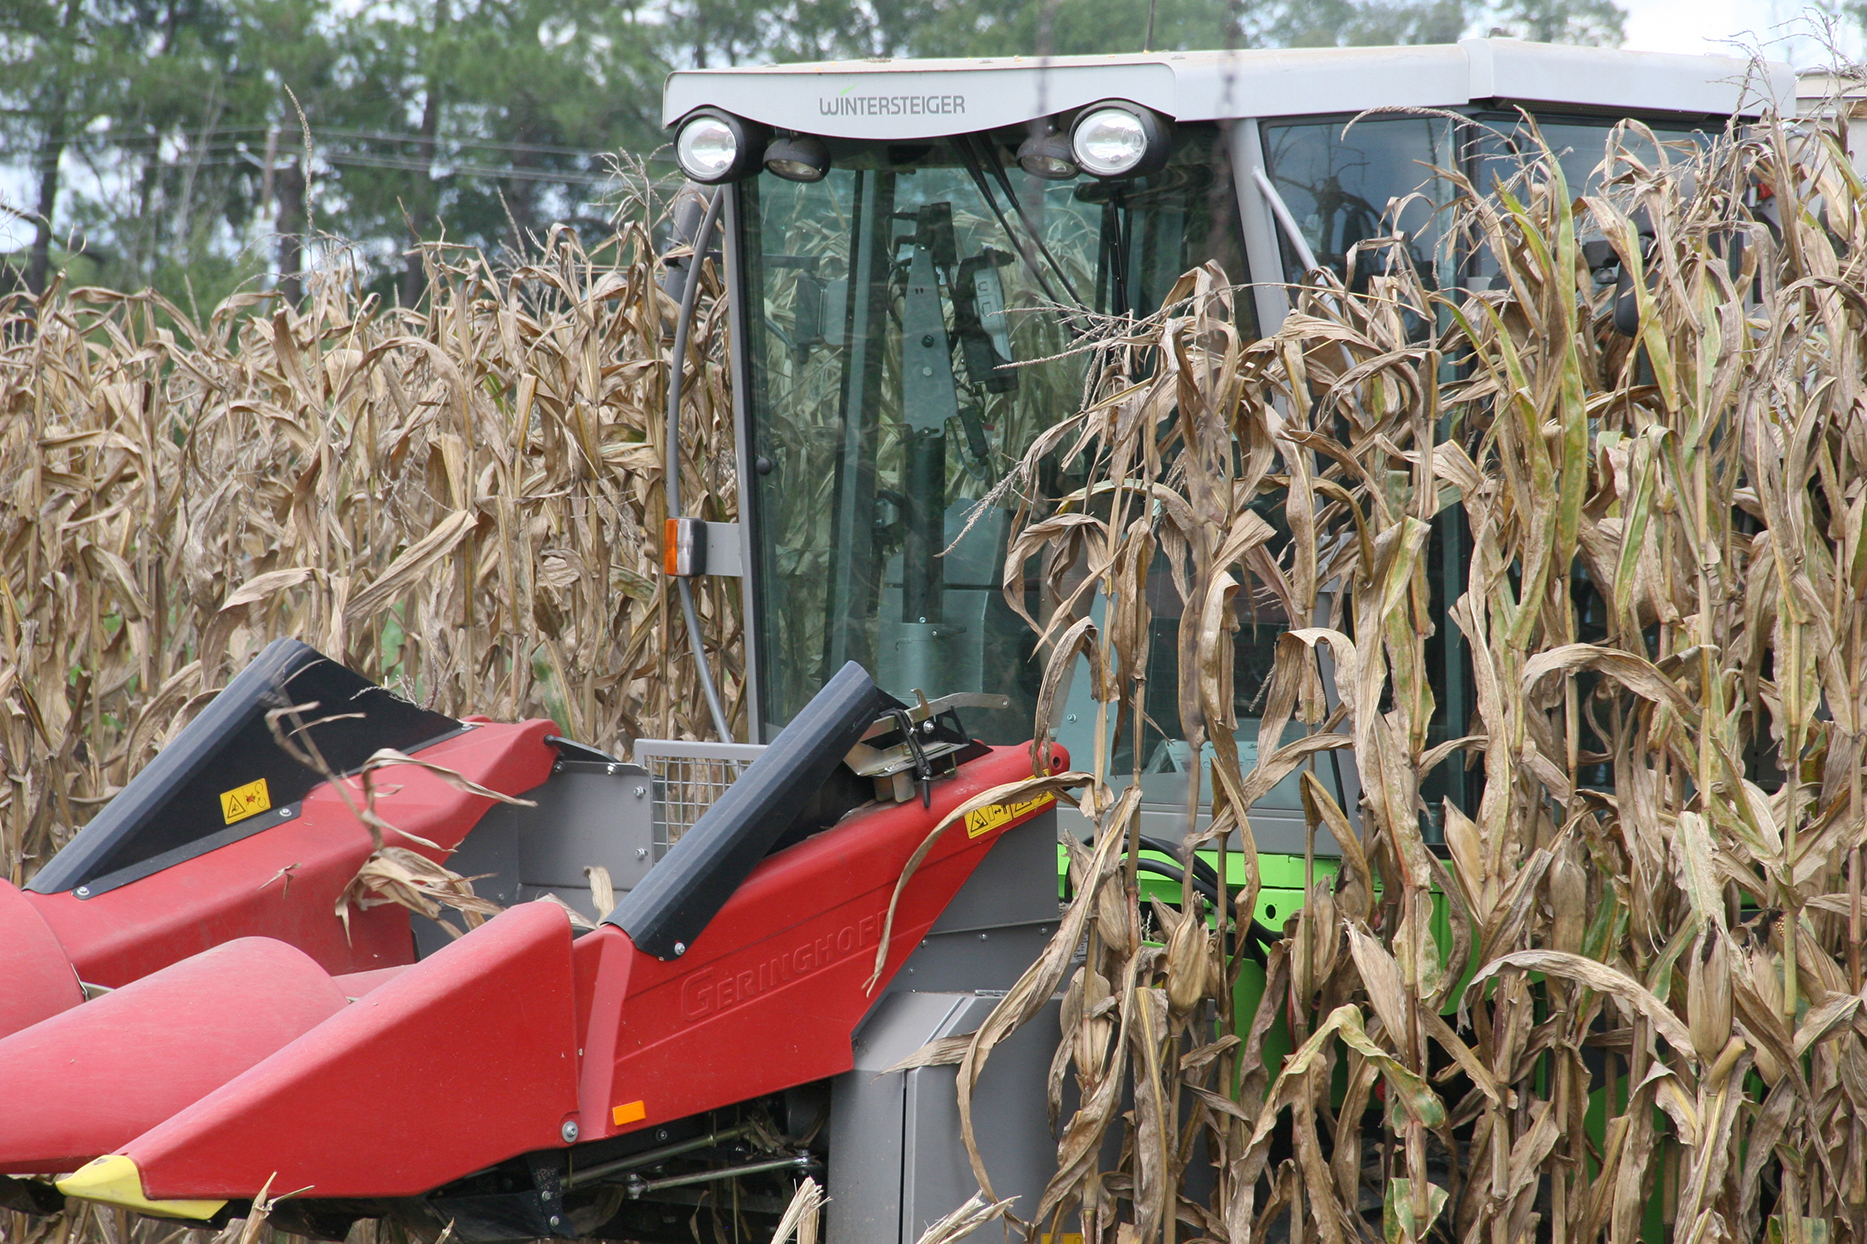 Following this harvest season, corn farmers reported yields between 8 and 12 percent below average.